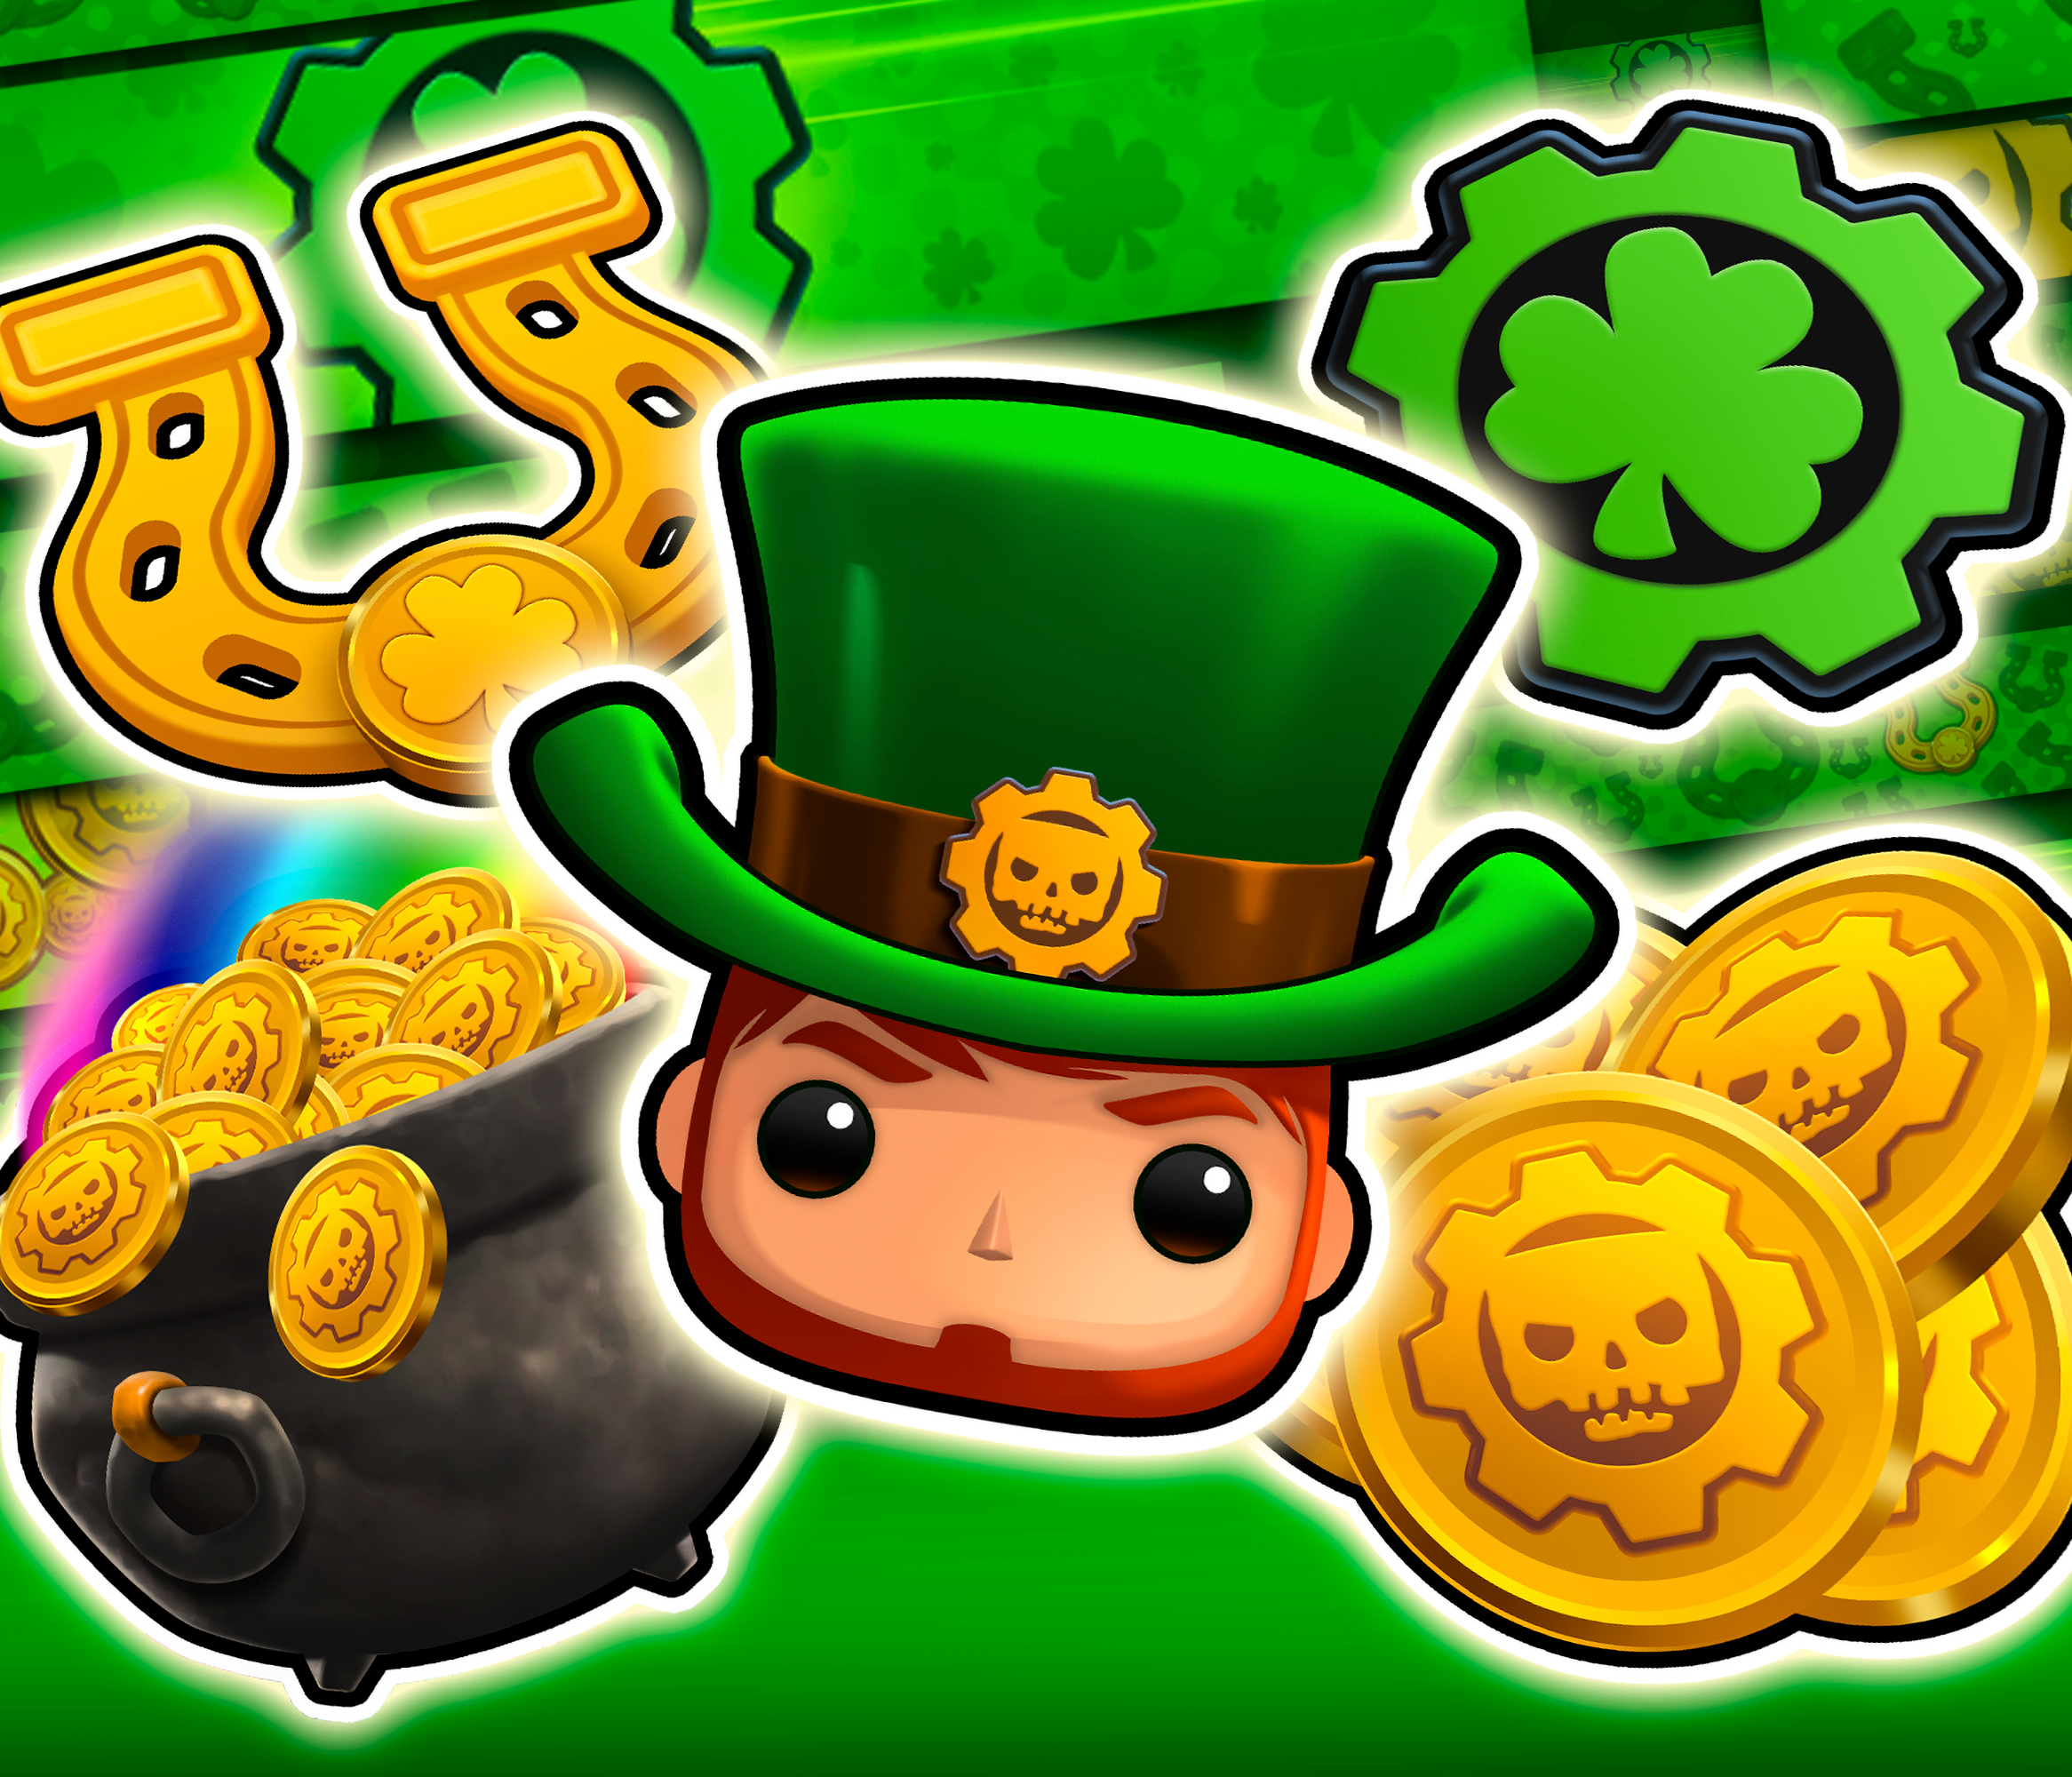 An array of Gears POP! St Patrick's Day logos and emblems